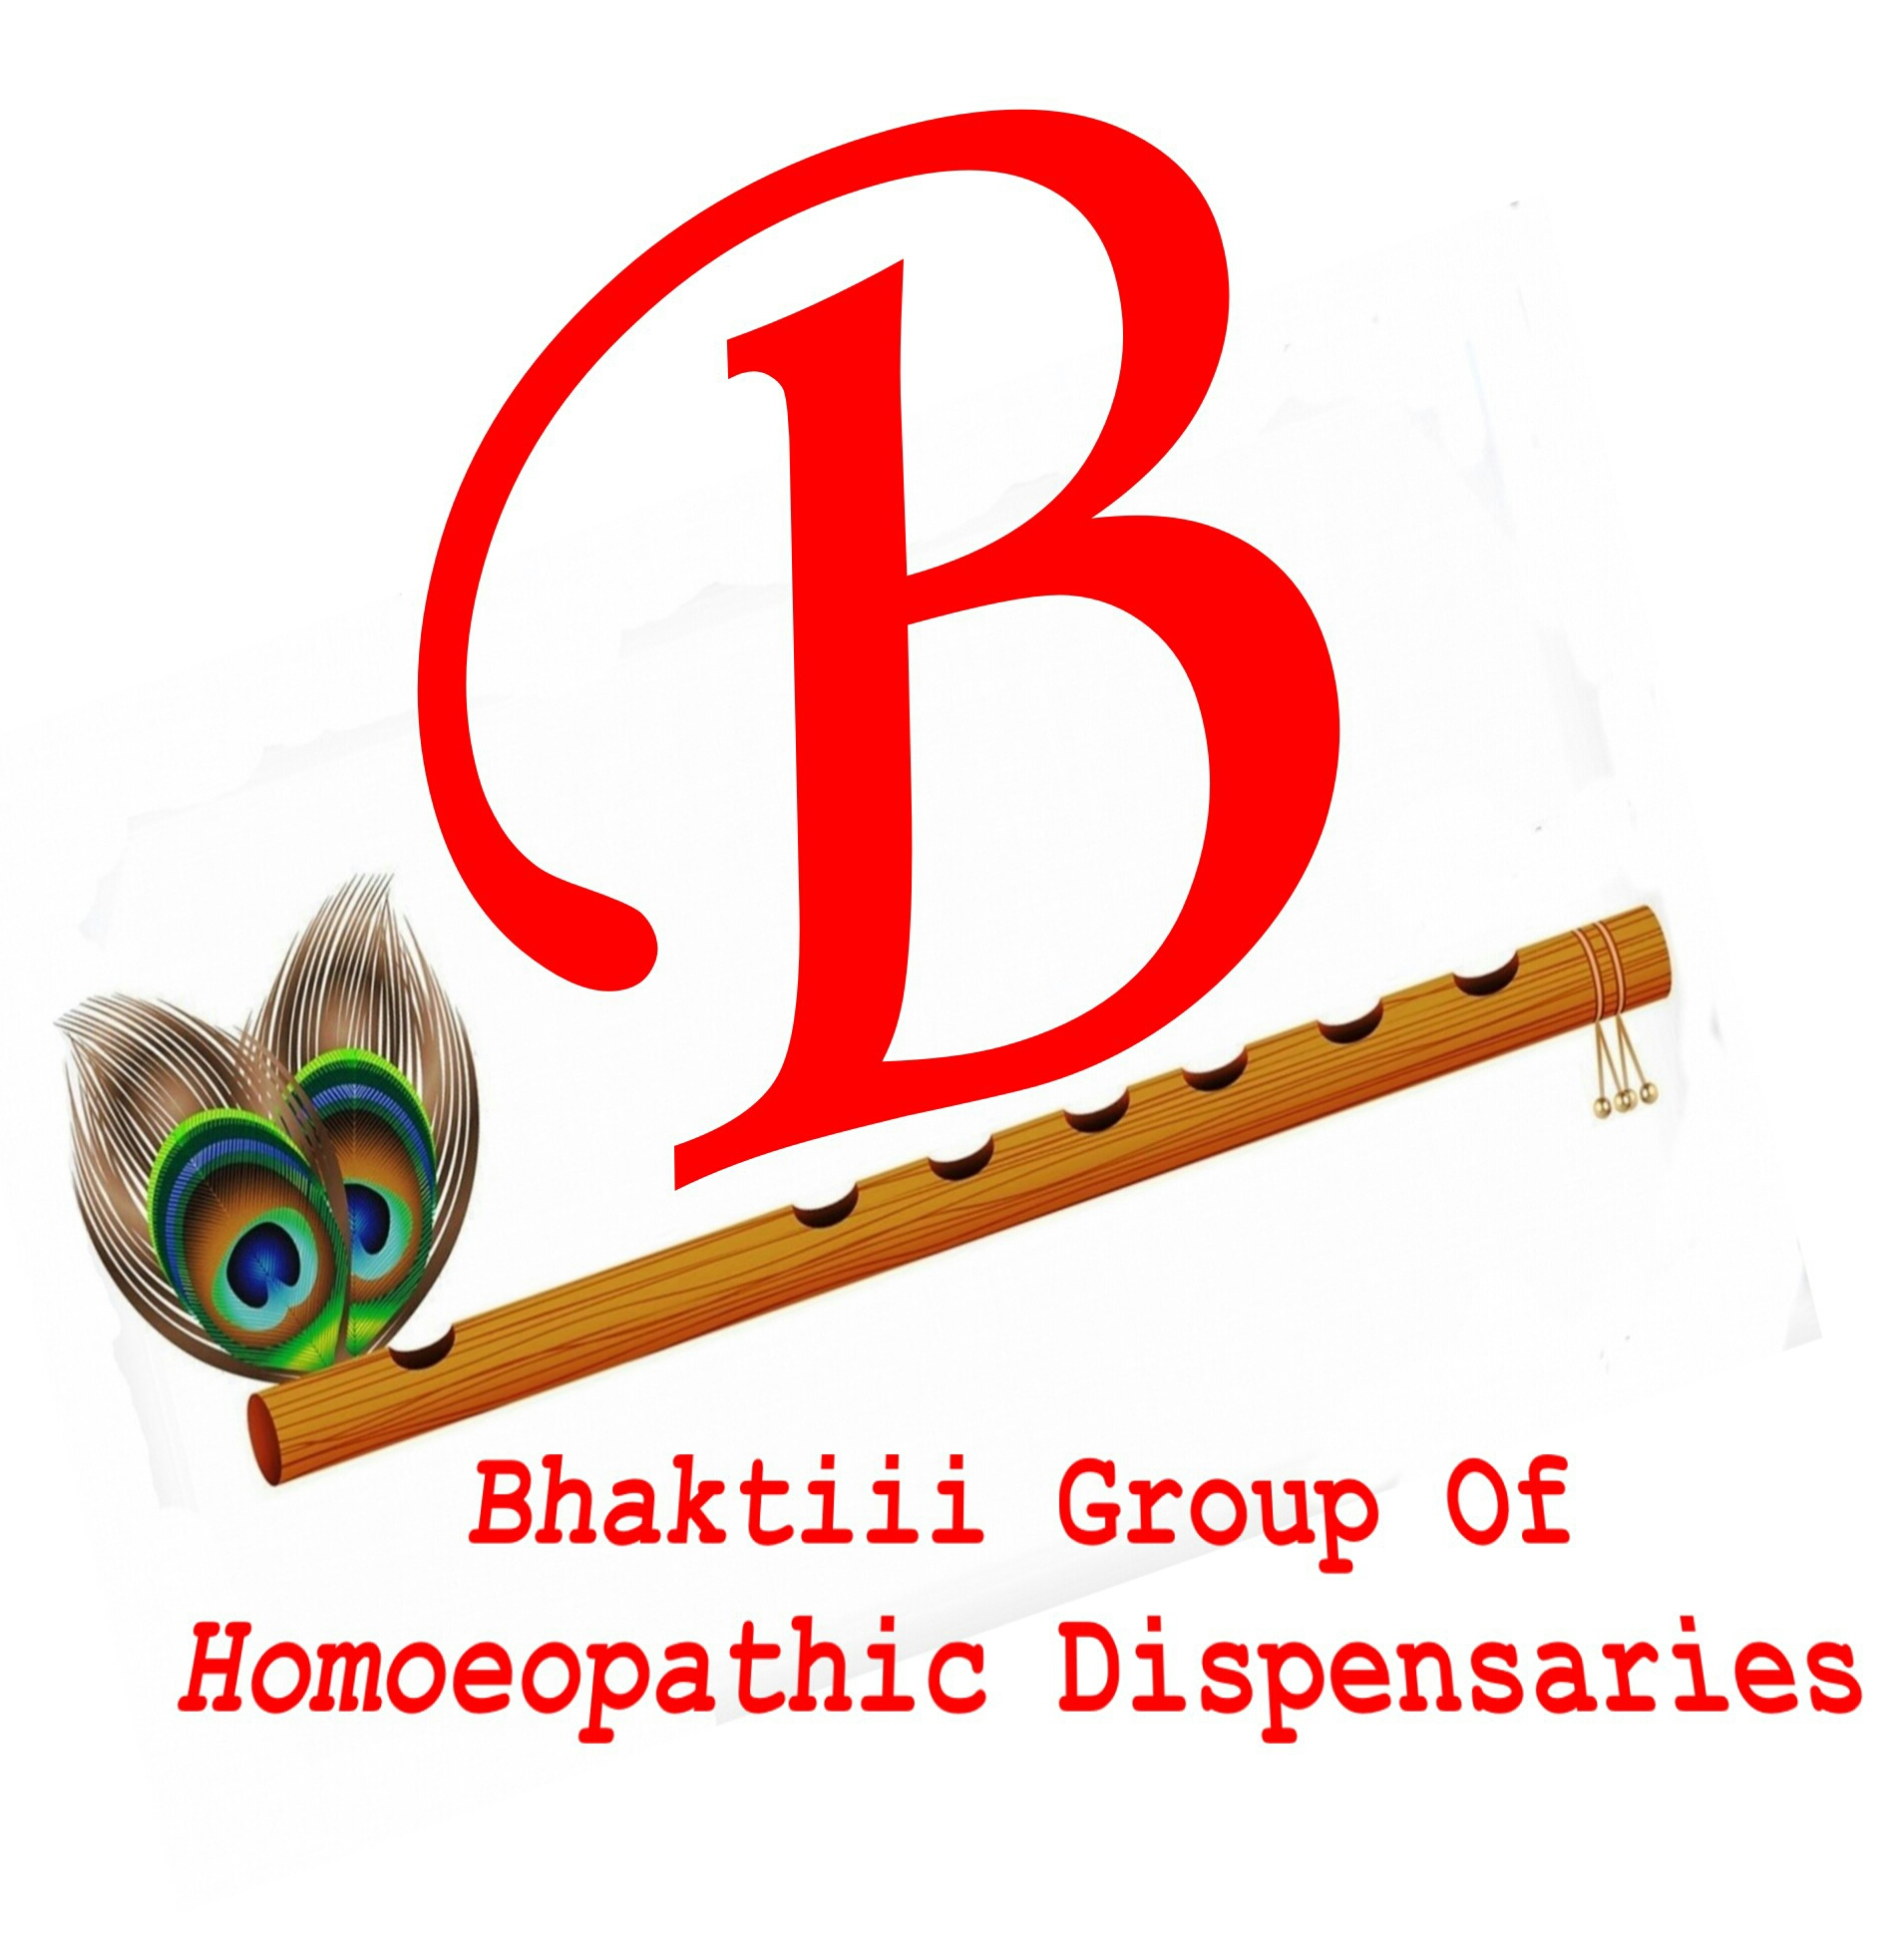 Dr Shah's Bhaktiii Group Of Homeopathy Dispensaries